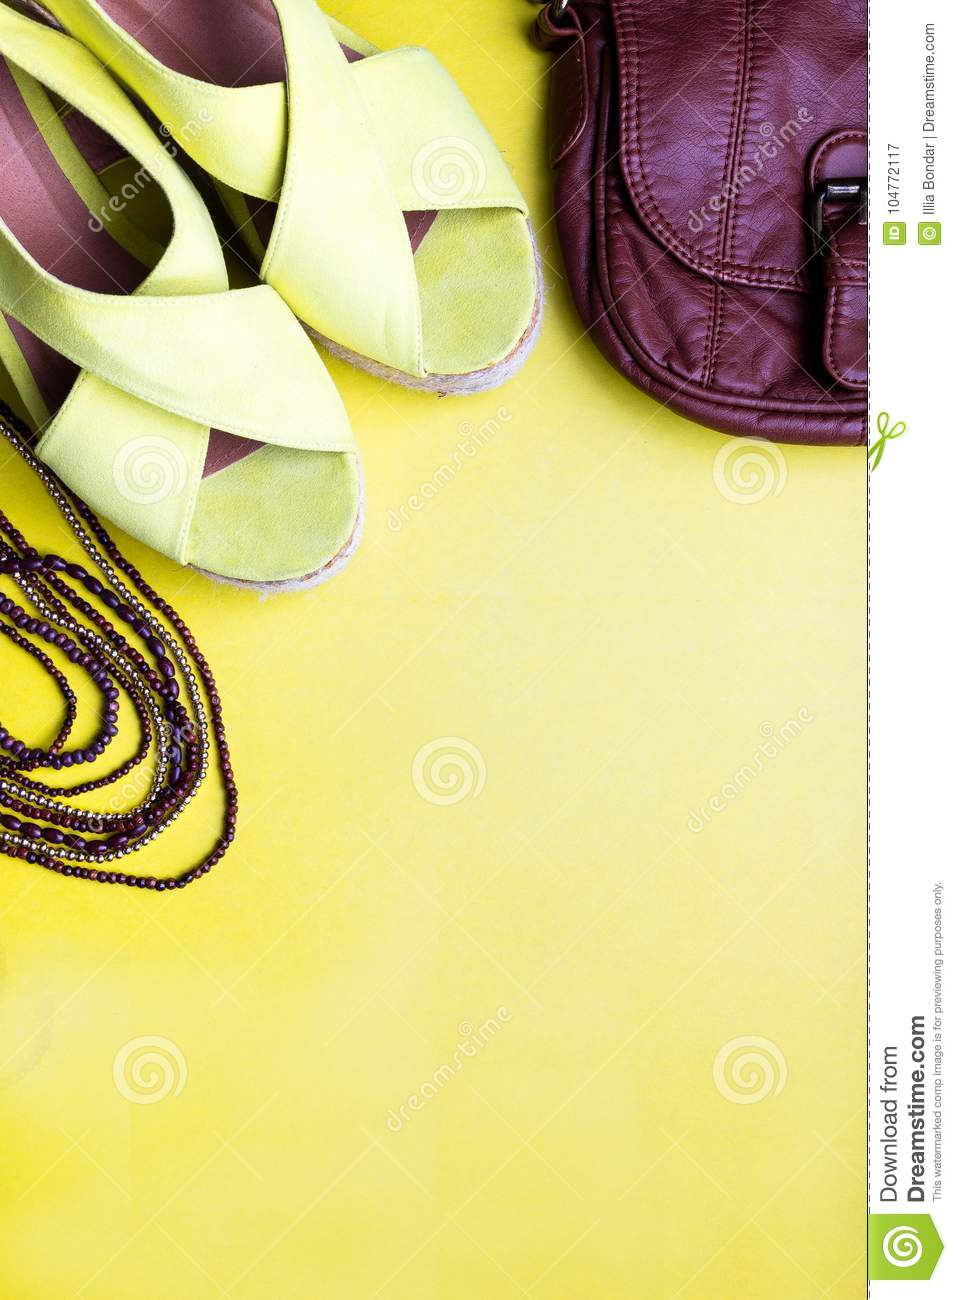 a0a3365939 Set of Woman`s Things Accessories to Summer Season. Brown Bag Yellow  Platform Sandals